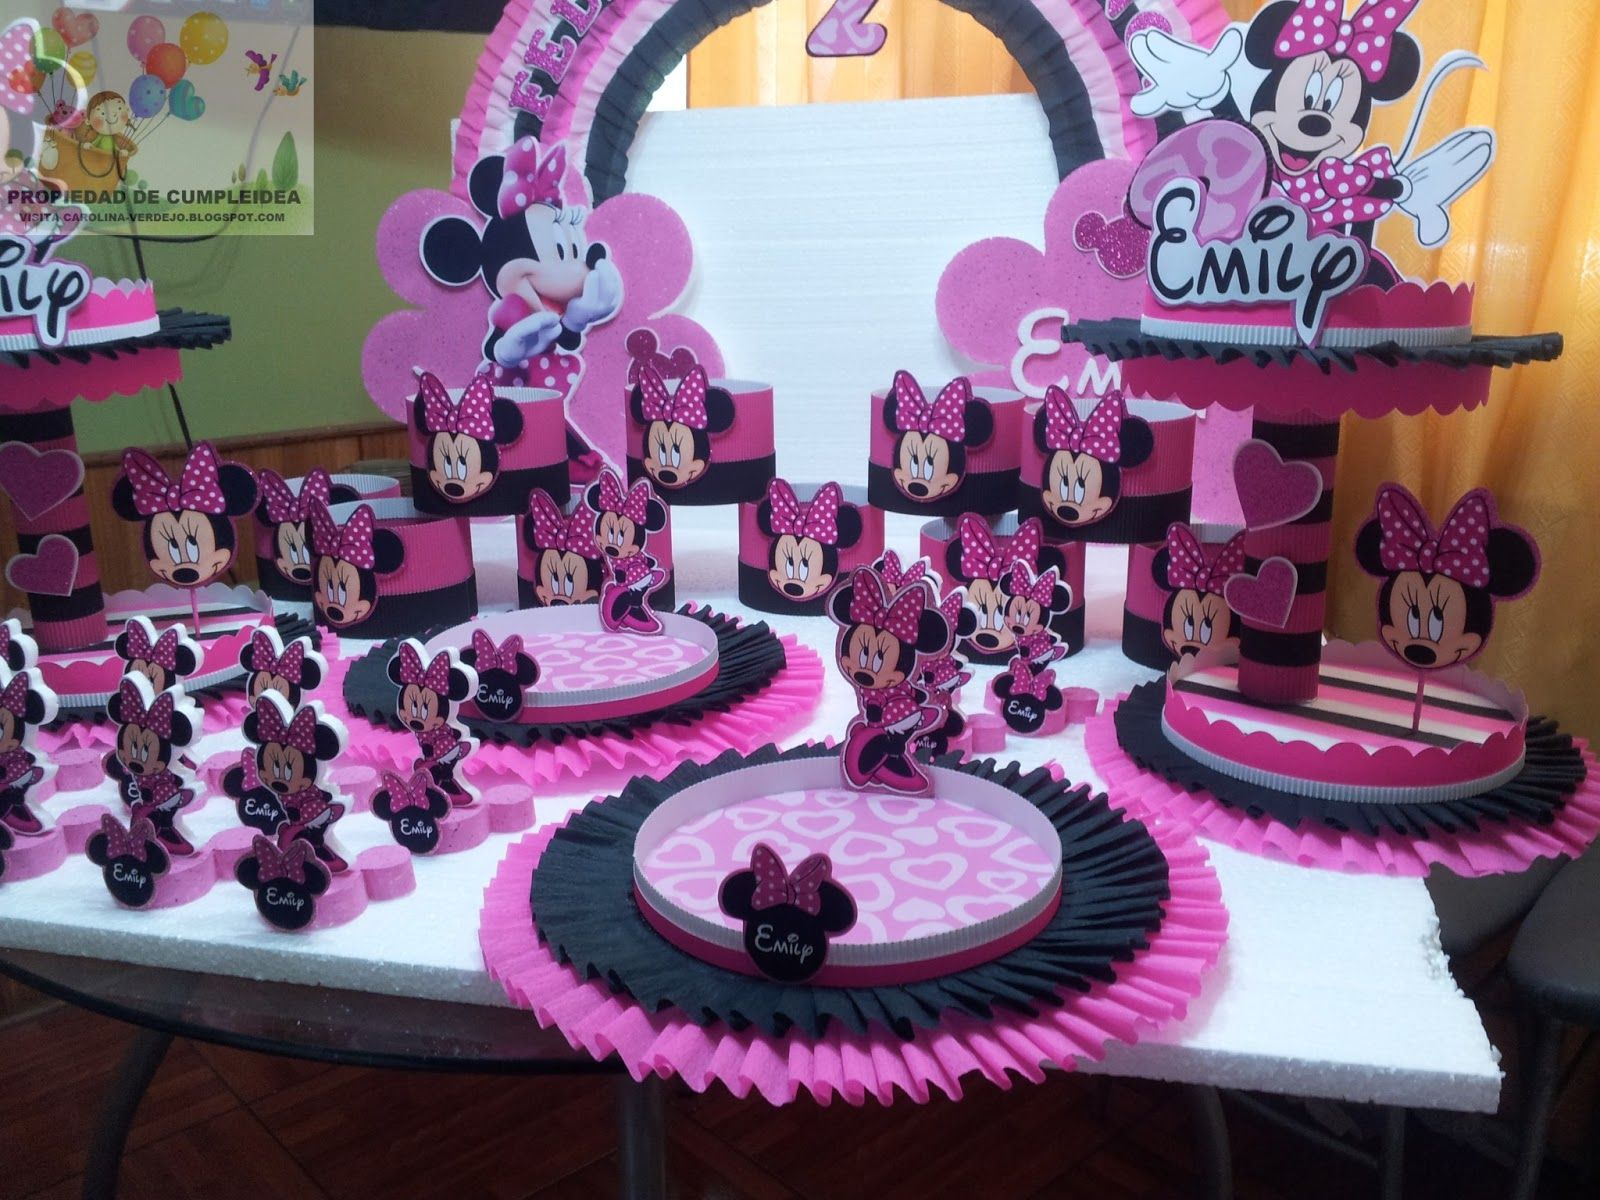 Decoraciones para fiesta decoraciones infantiles minnie for Decoracion fiestas tematicas